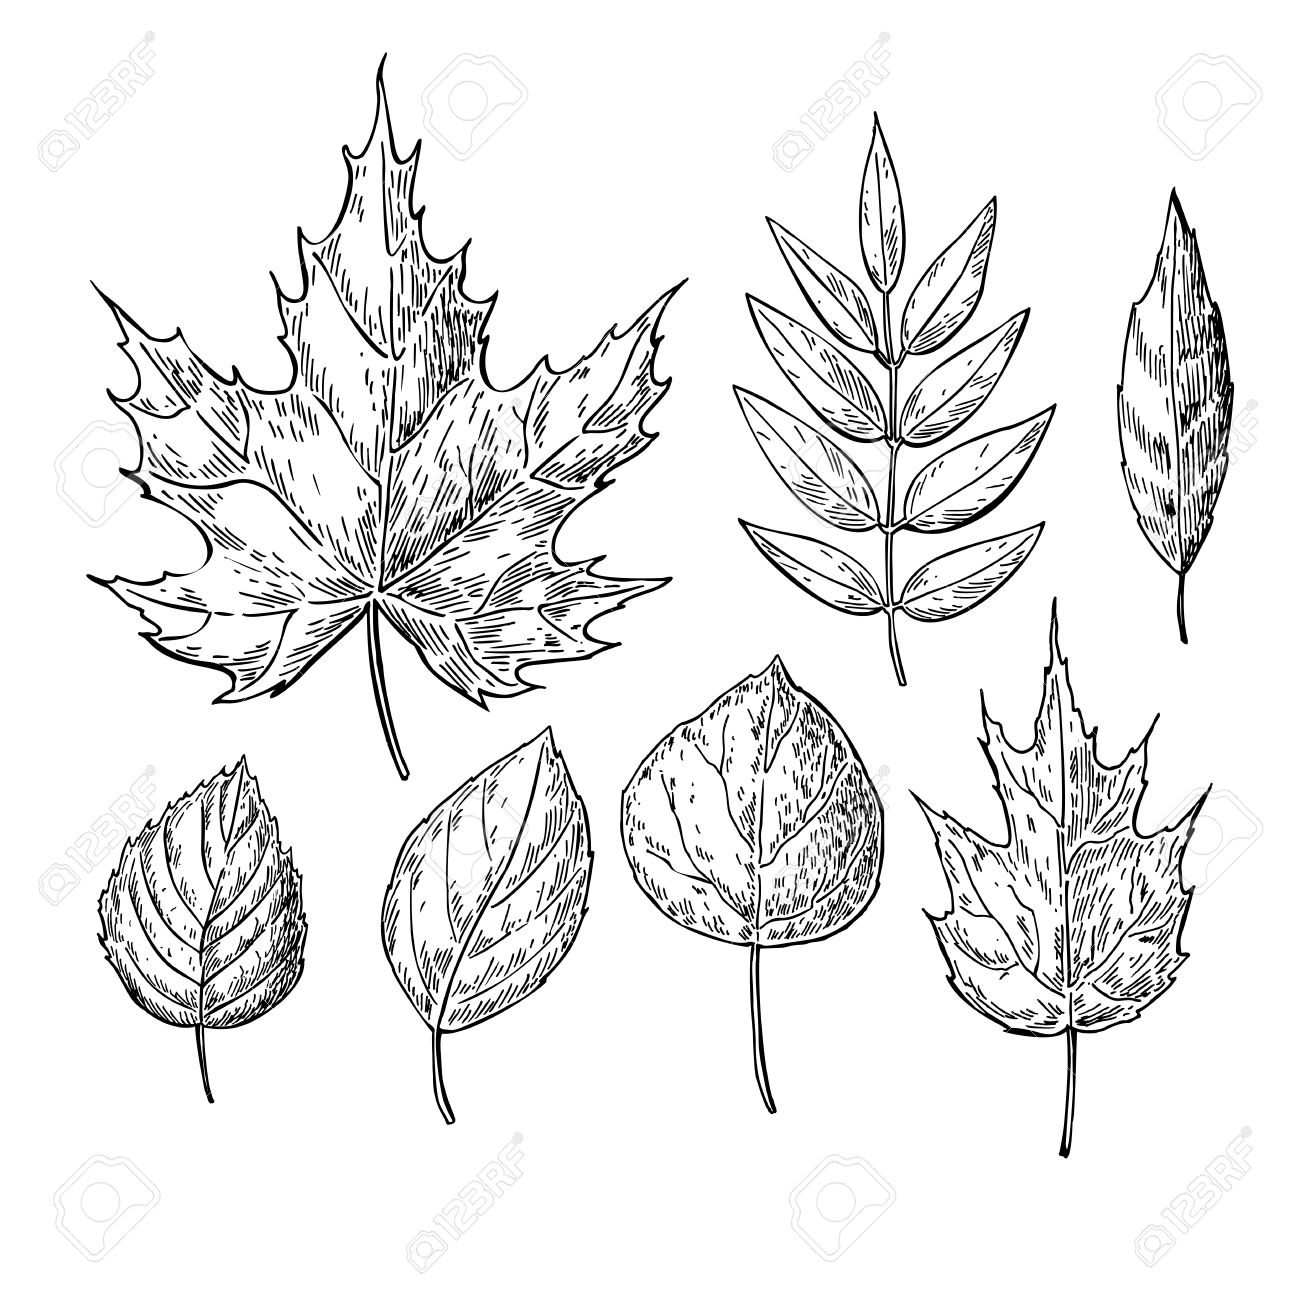 Vector vector autumn drawing leaves set isolated objects hand drawn detailed botanical illustrations artistic leaf sketch vintage fall seasonal decor